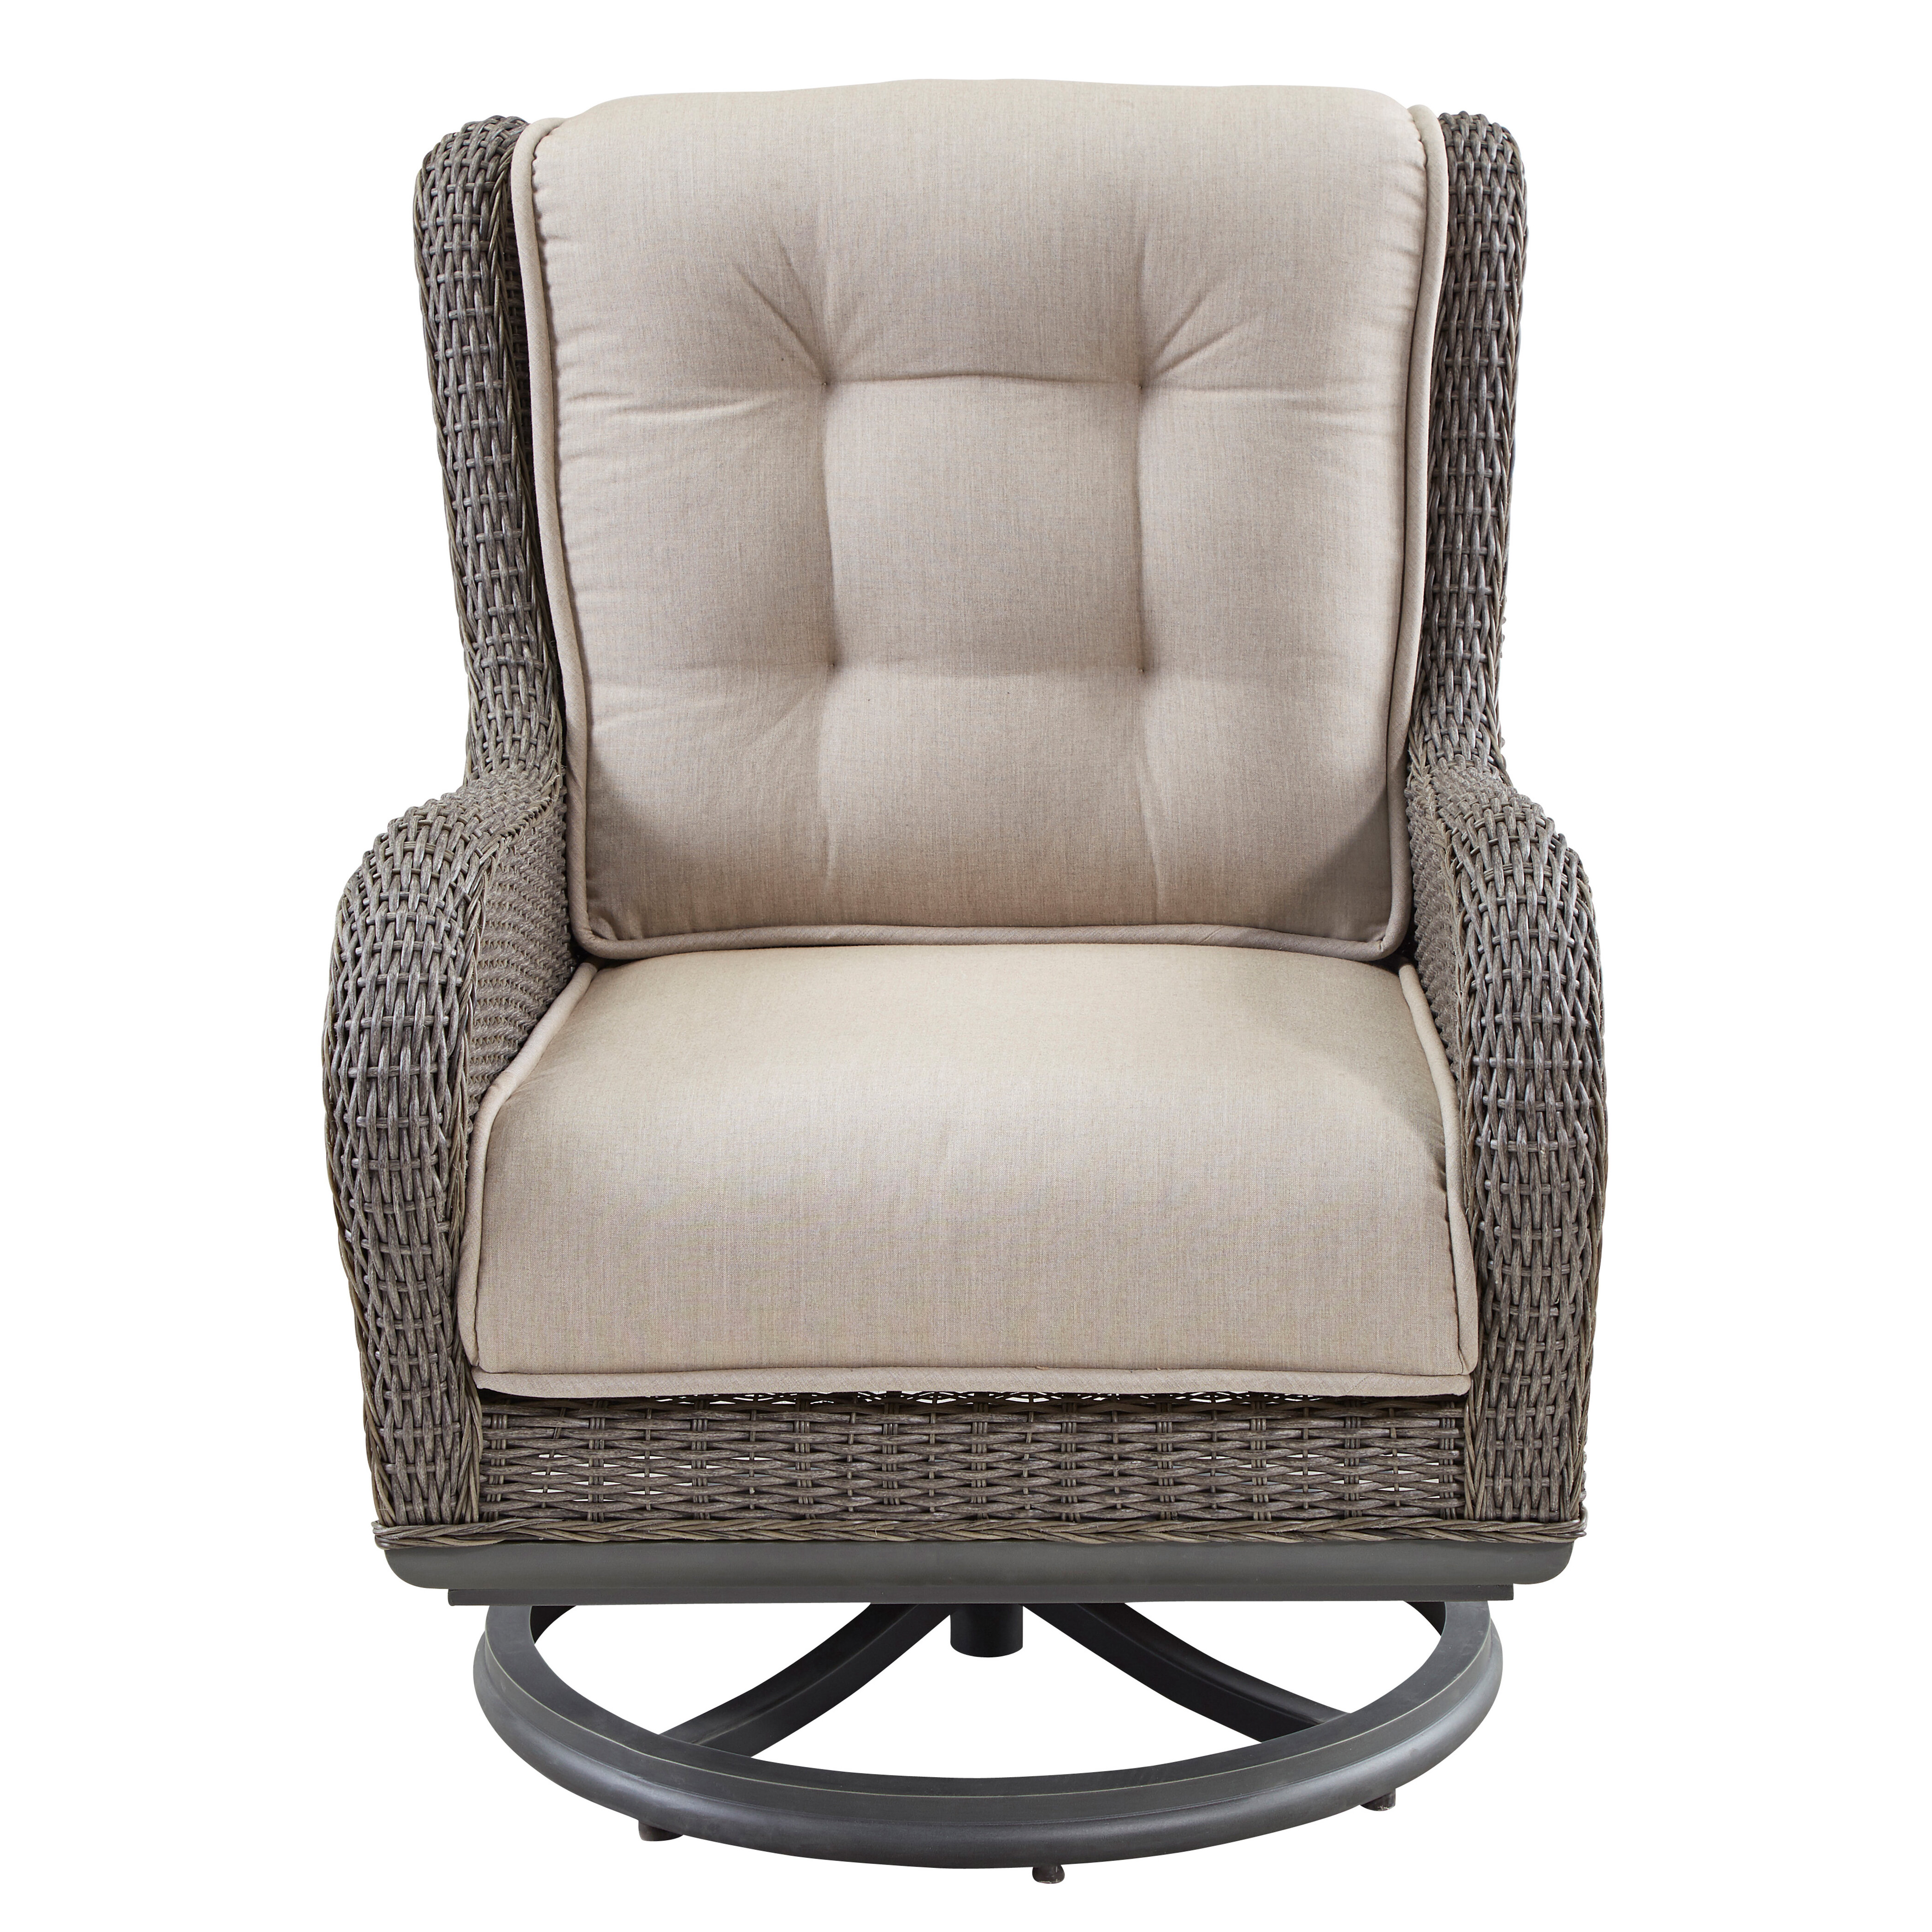 Awe Inspiring Paula Deen Home Dogwood Swivel Lounge Chair With Cushions Gmtry Best Dining Table And Chair Ideas Images Gmtryco